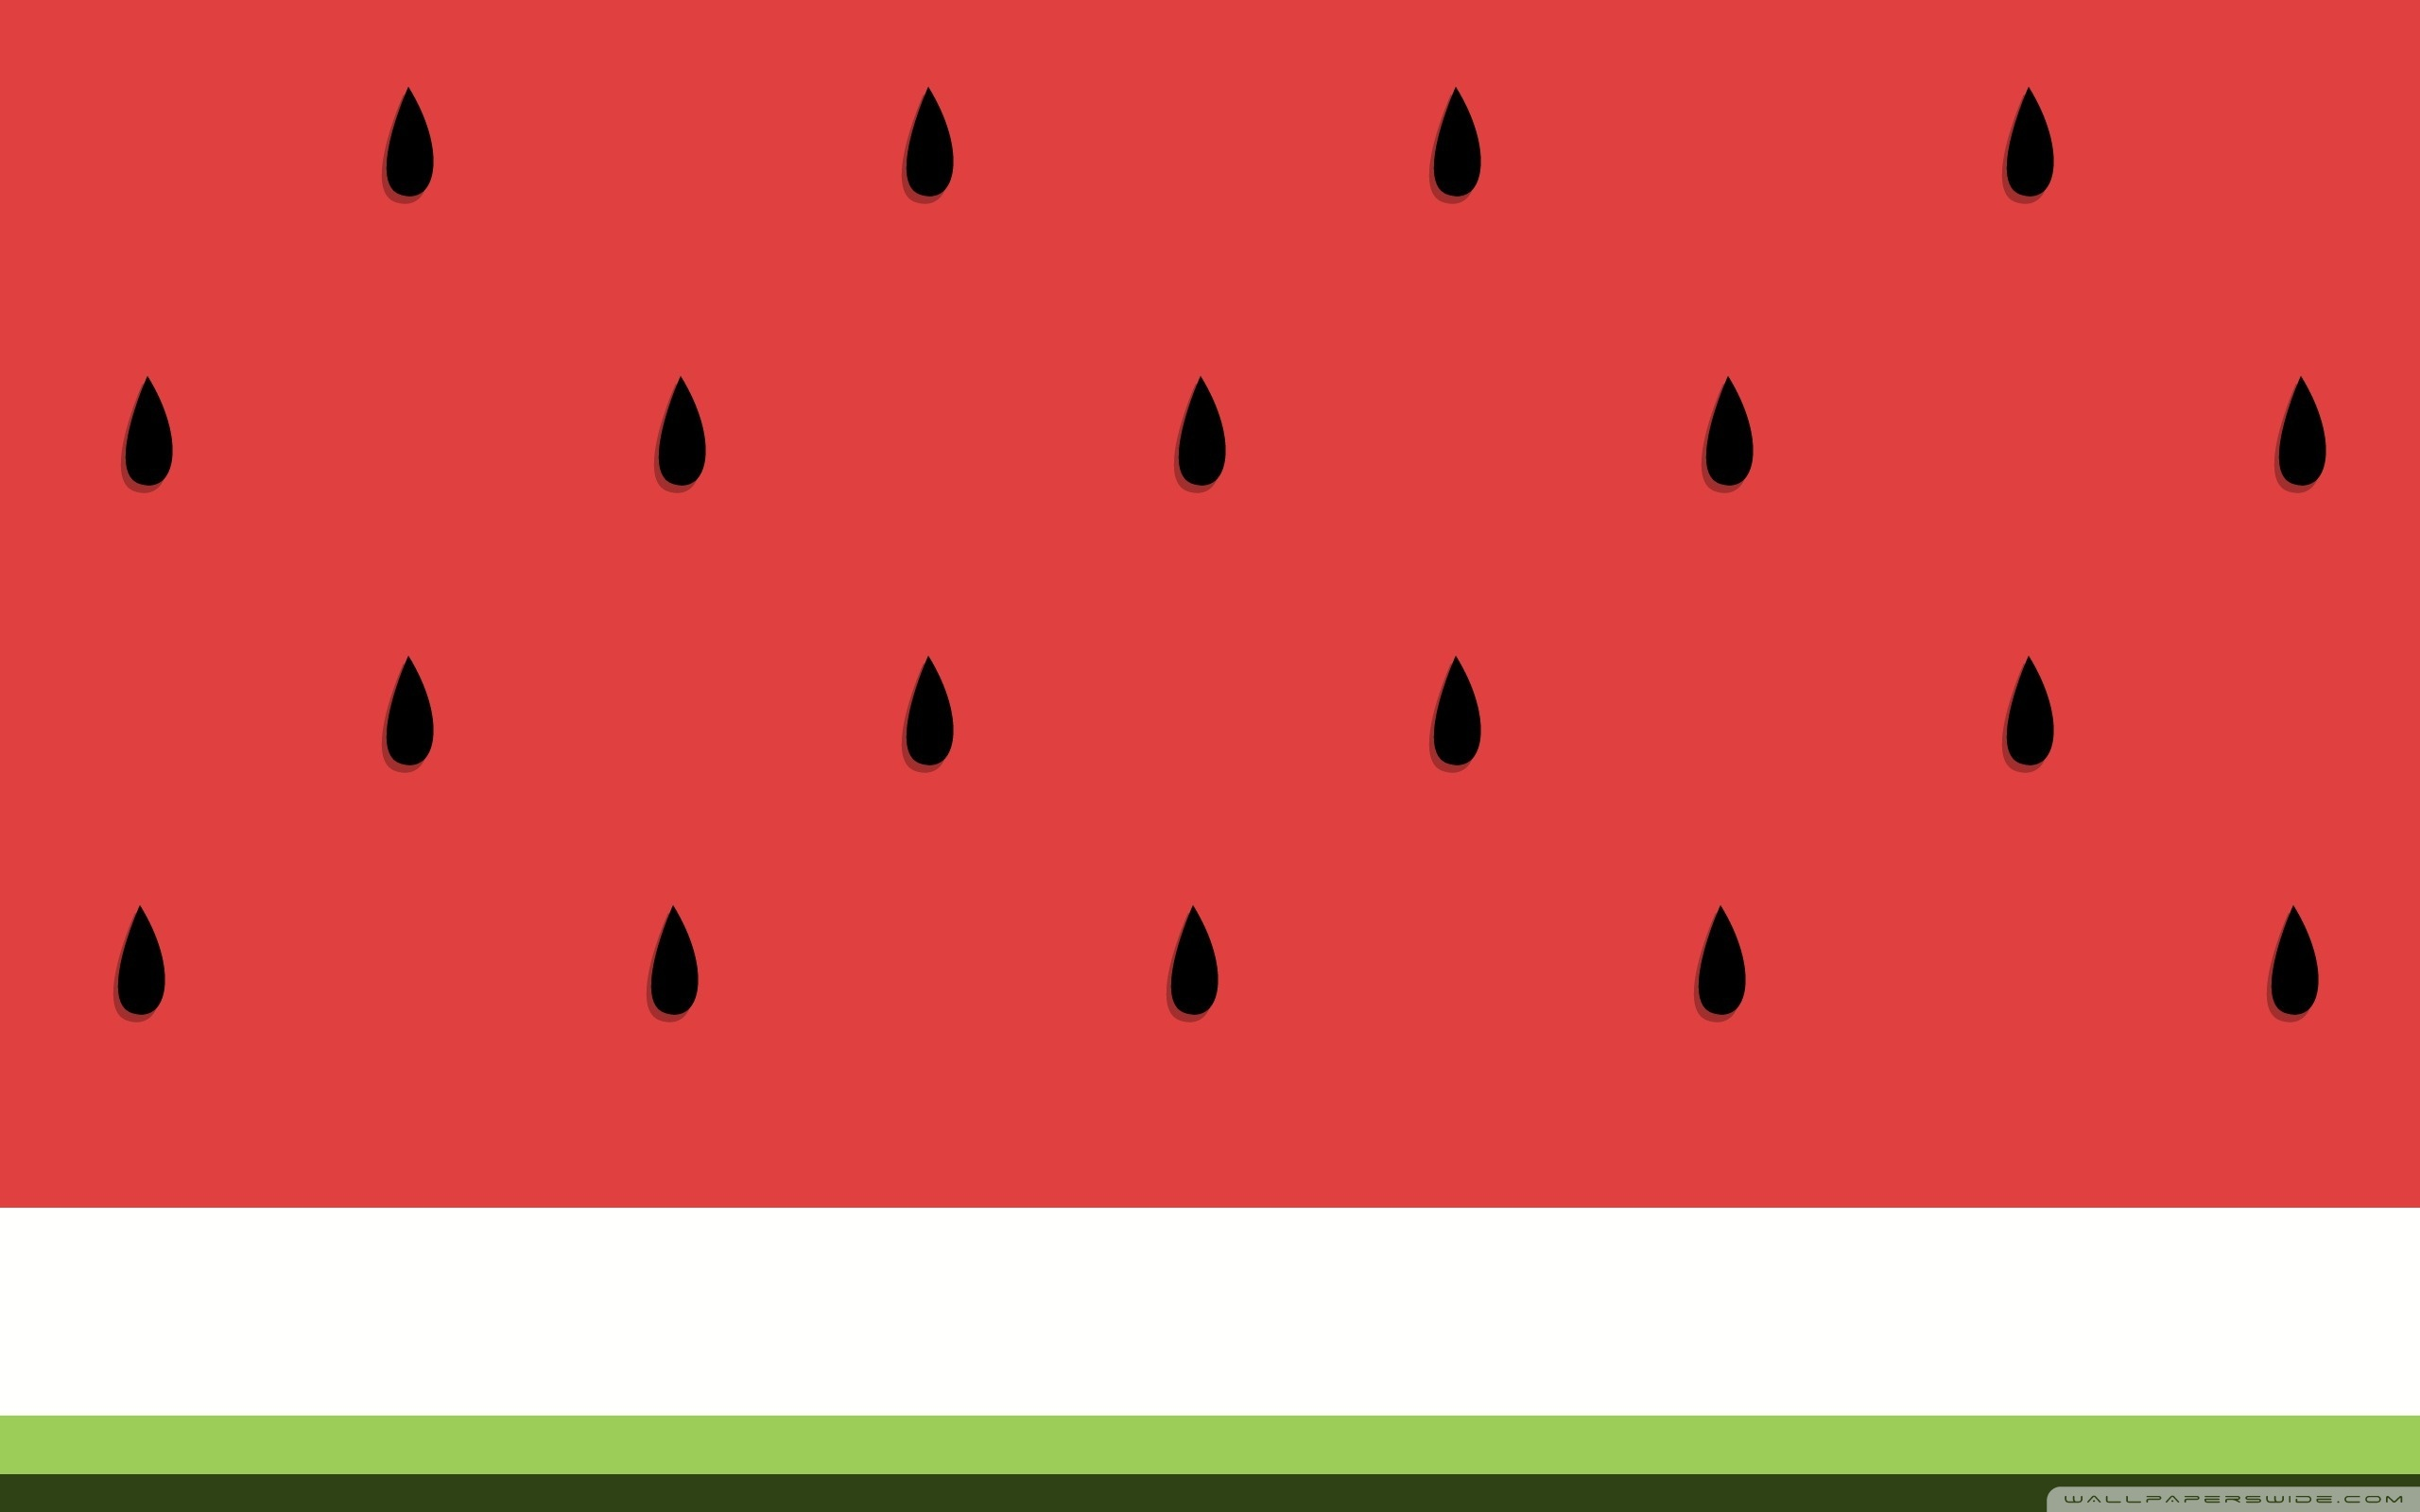 Cute Watermelon wallpaper | 2560x1600 | #7619